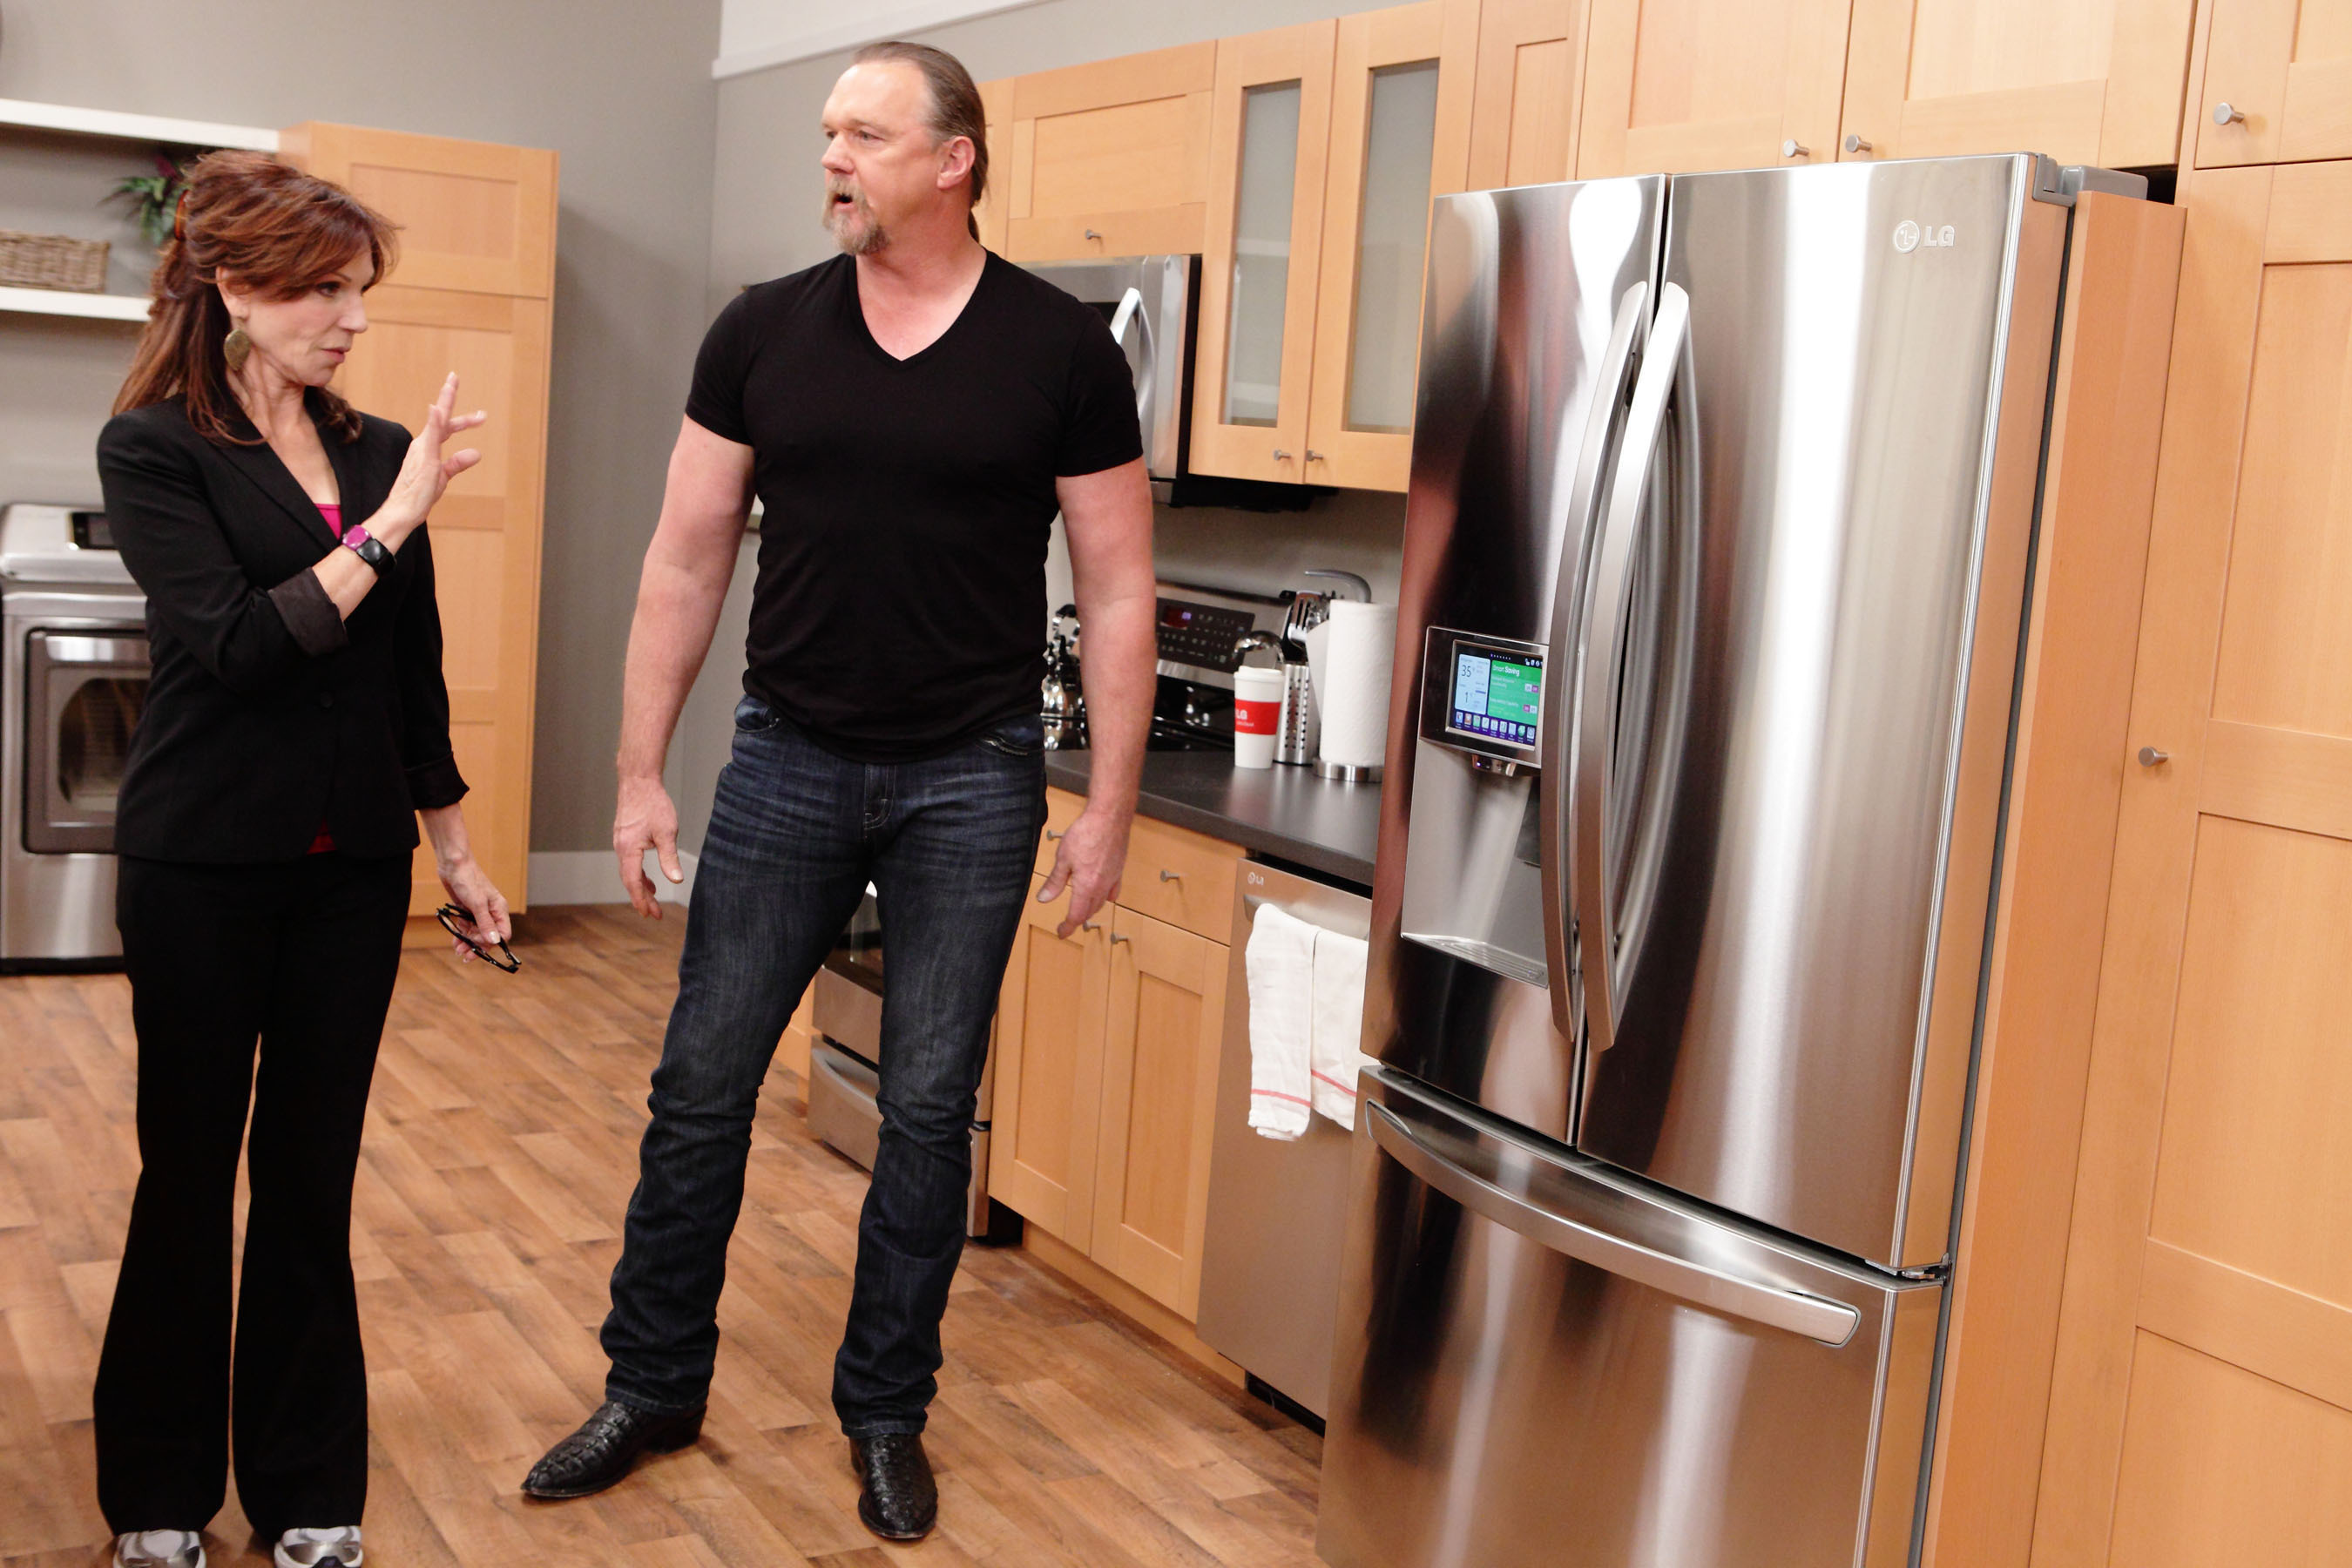 Marilu Henner and Trace Adkins brainstorm how to incorporate LG's Smart Refrigerator into Team Power's marketing presentation airing during the LG episode on NBC this Sunday, April 28, at 9 p.m. ET/8 p.m. CT.  (PRNewsFoto/LG Electronics USA, Inc.)